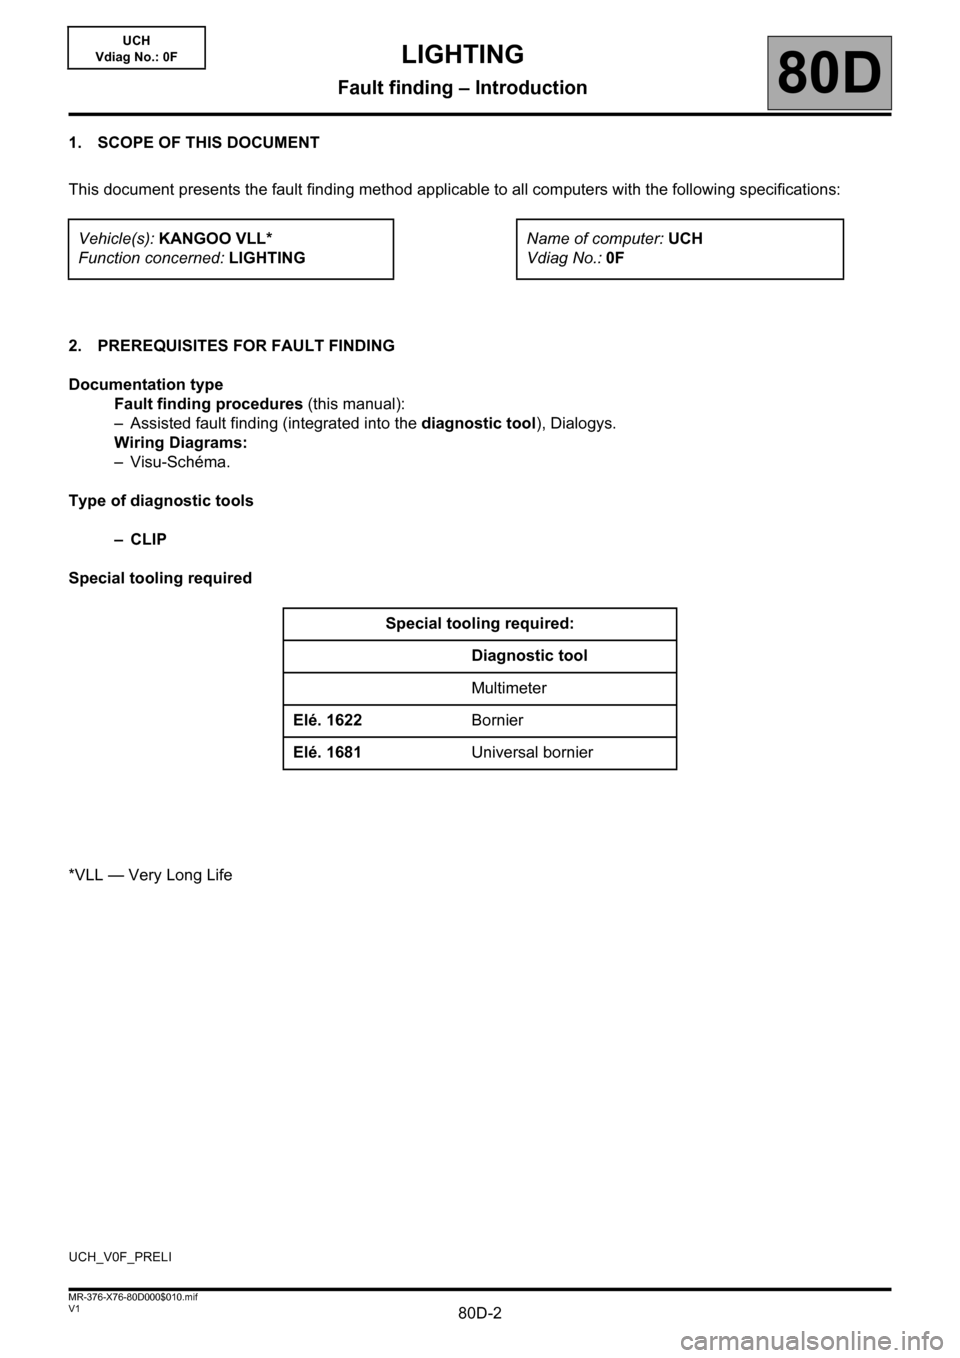 RENAULT KANGOO 2013 X61 / 2.G Lighting Workshop Manual 80D-2V1 MR-376-X76-80D000$010.mif 80D UCH Vdiag No.: 0F 1. SCOPE OF THIS DOCUMENT This document presents the fault finding method applicable to all computers with the following specifications: 2. PRER